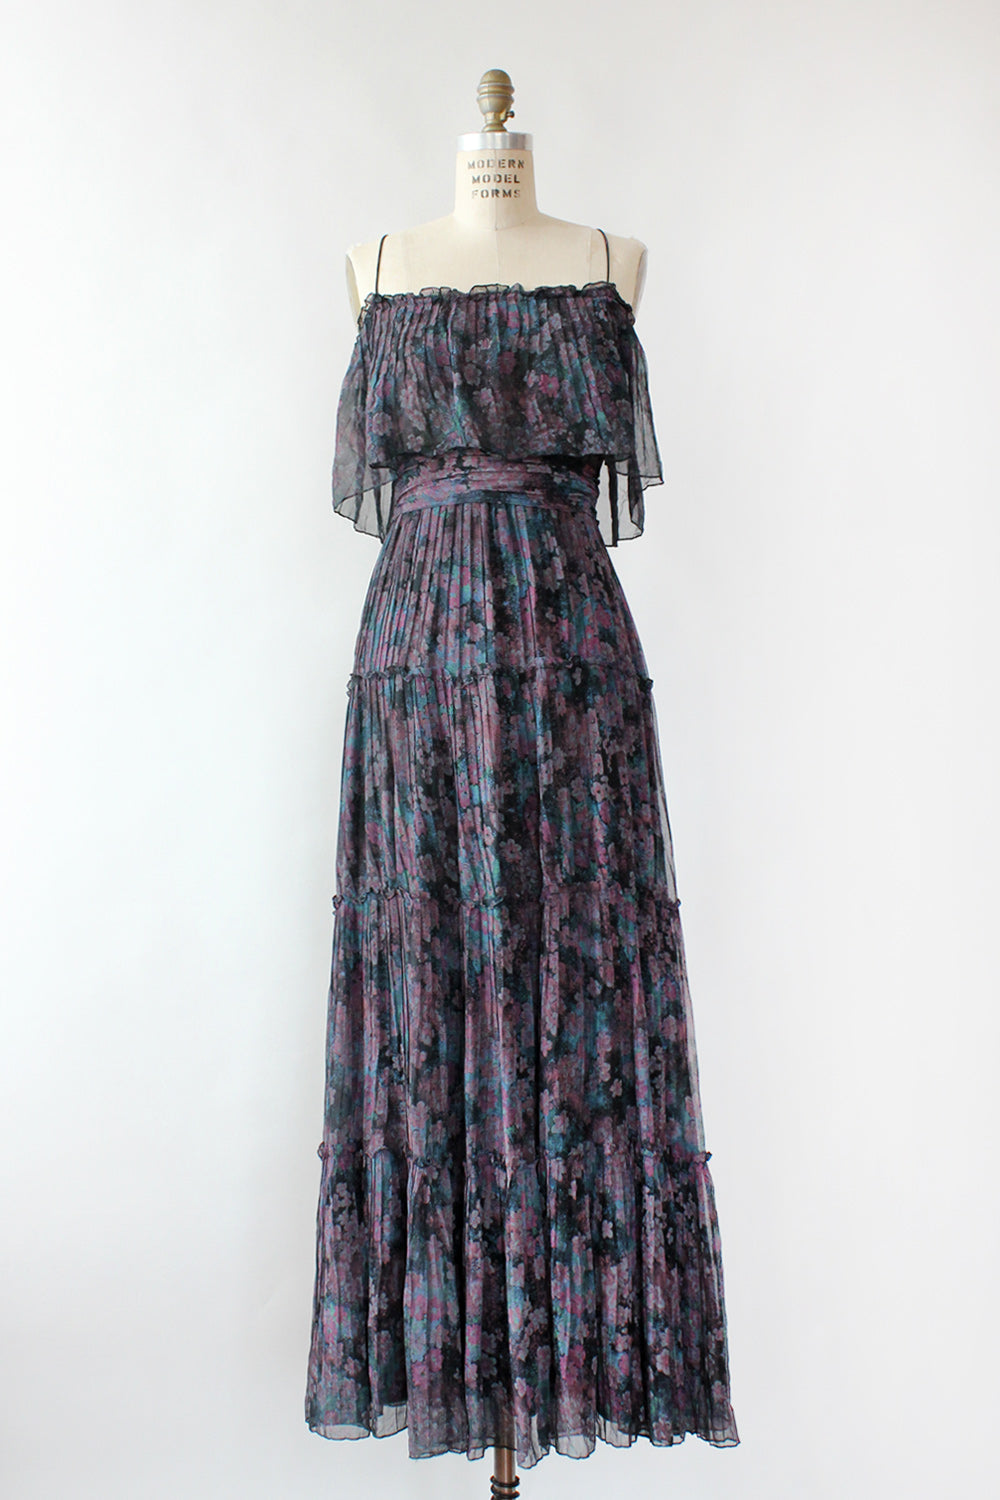 Magnin Pleated Watercolor Maxi Dress S/M